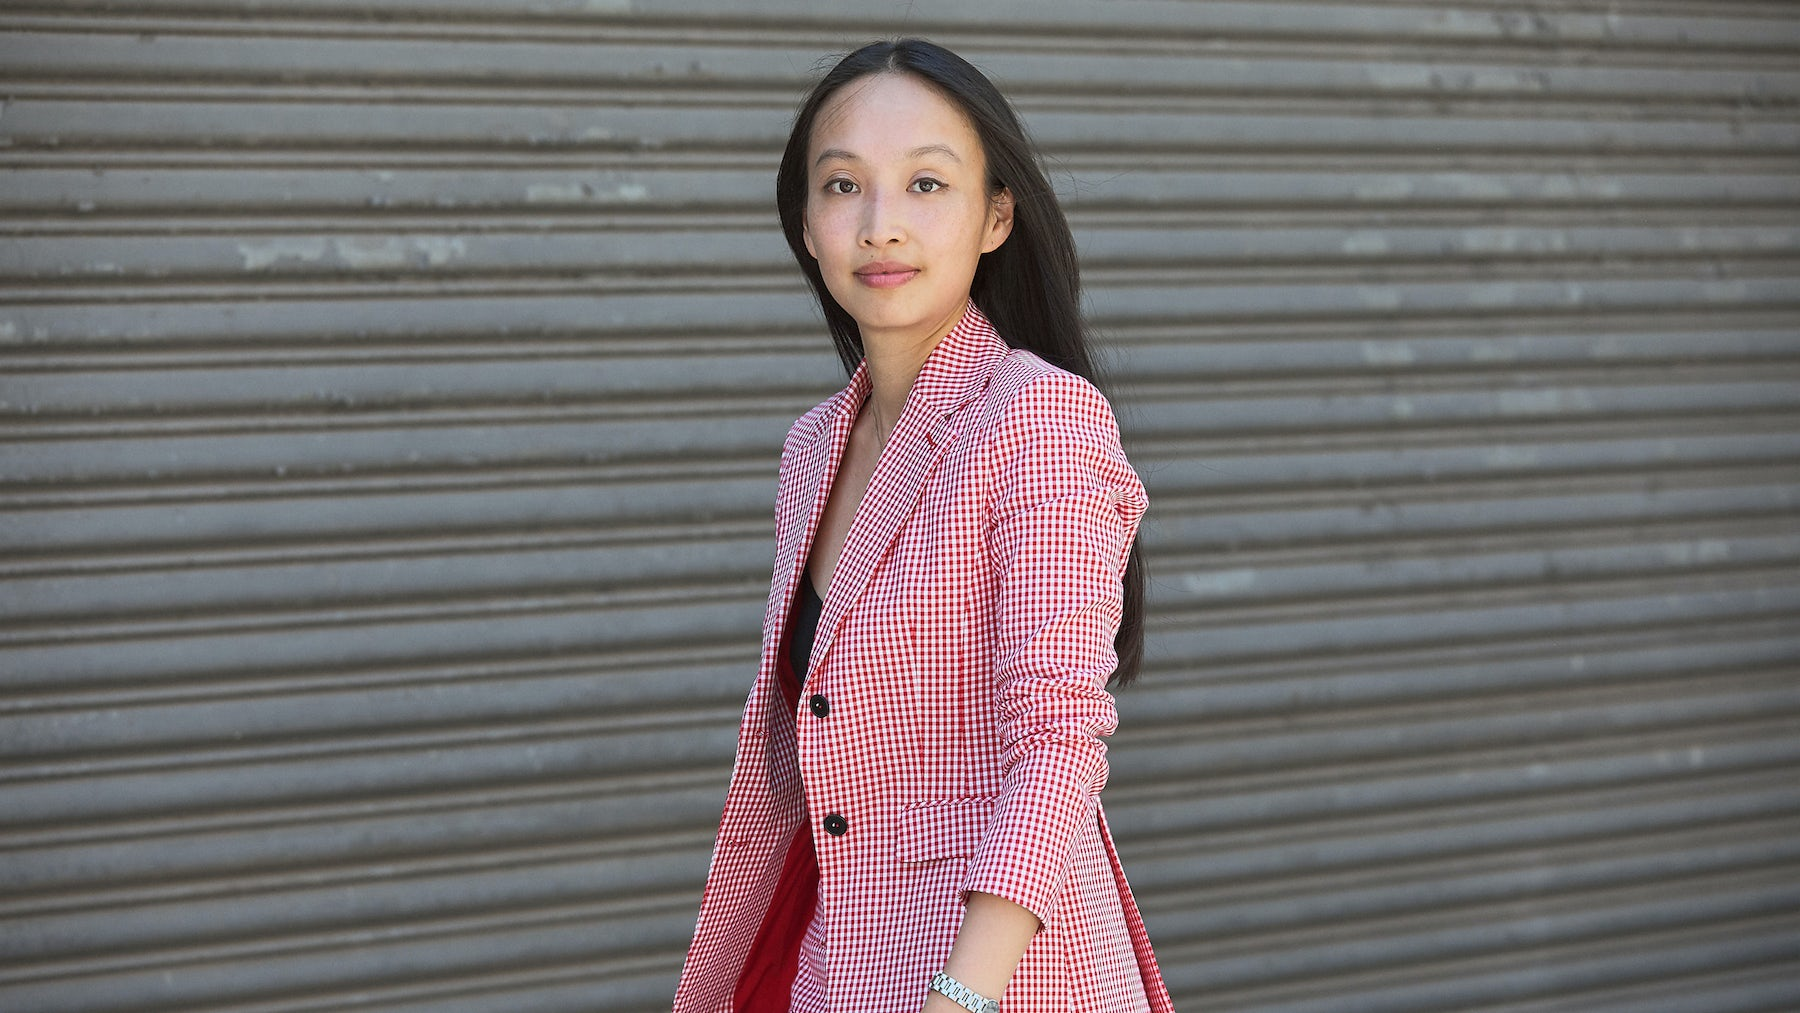 Director of marketing and communications at Altuzarra Jodie Chan | Source: Les Mijotes